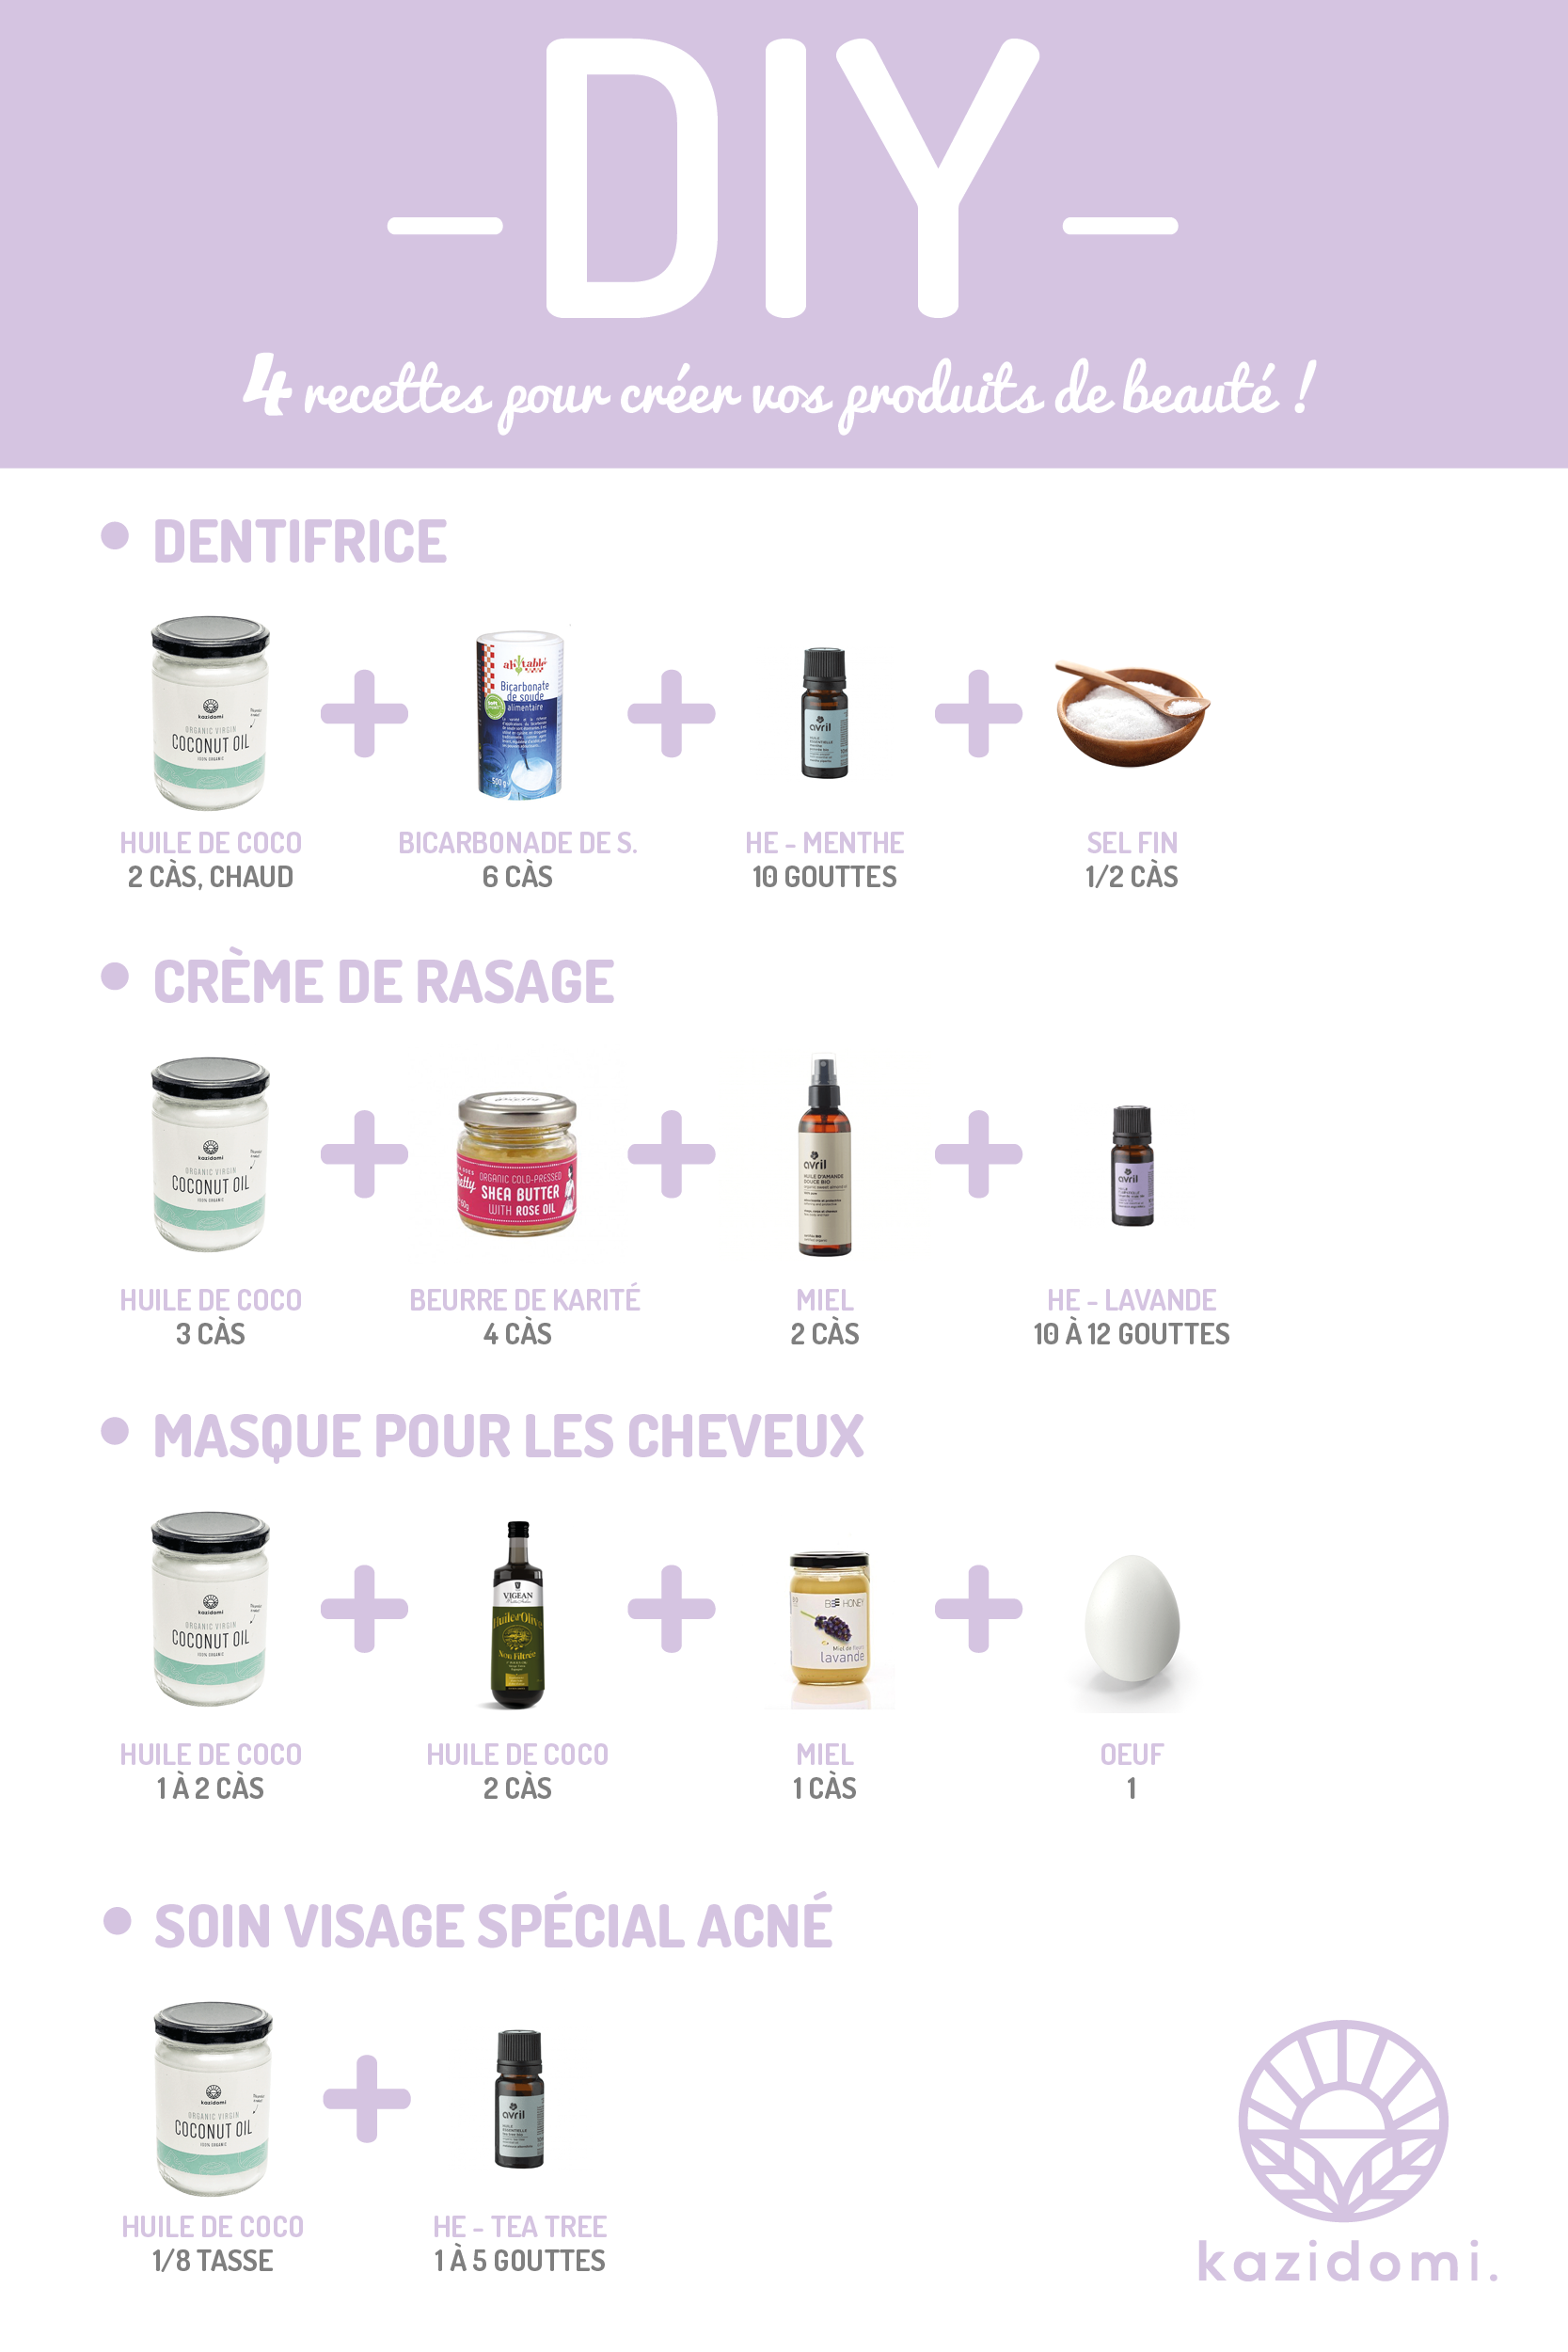 Epingle Par Kazidomi Healthy Veggie Food Sur Do It Yourself Produits De Beaute Maquillage Fait Maison Produit Beaute Maison